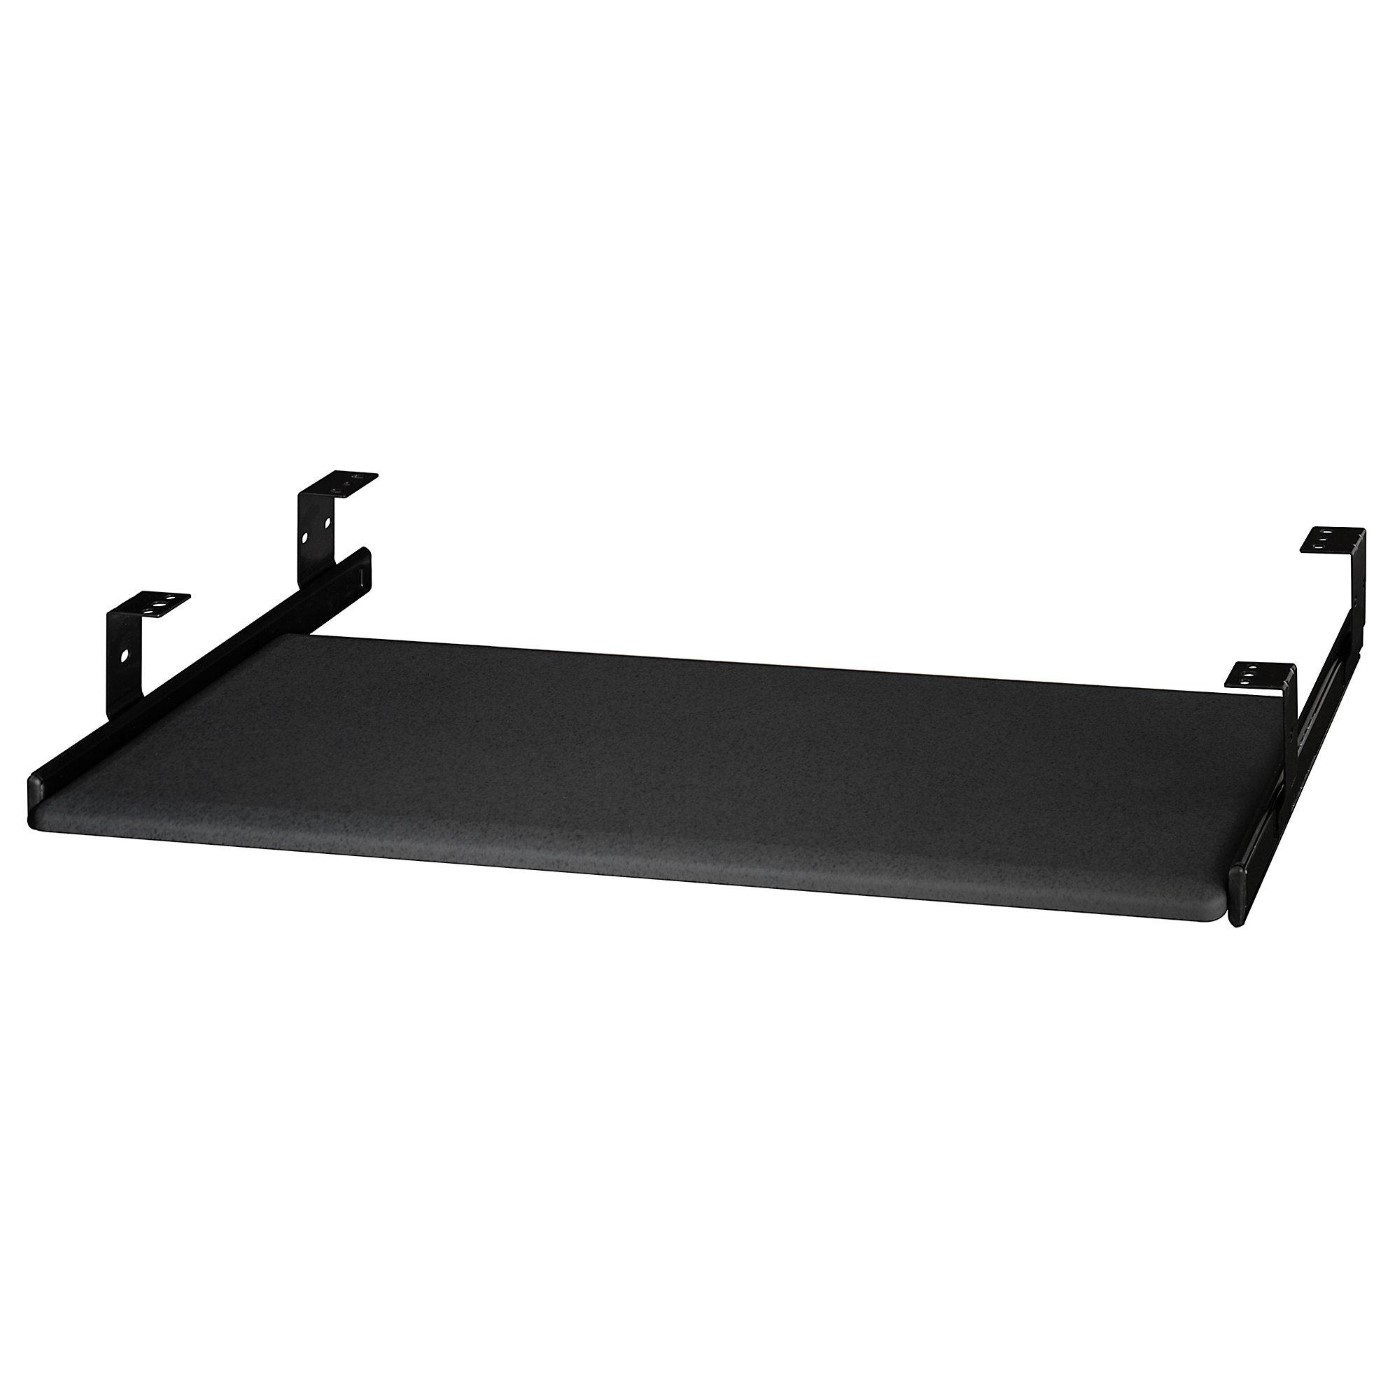 BUSH BUSINESS FURNITURE UNIVERSAL KEYBOARD SHELF. FREE SHIPPING.